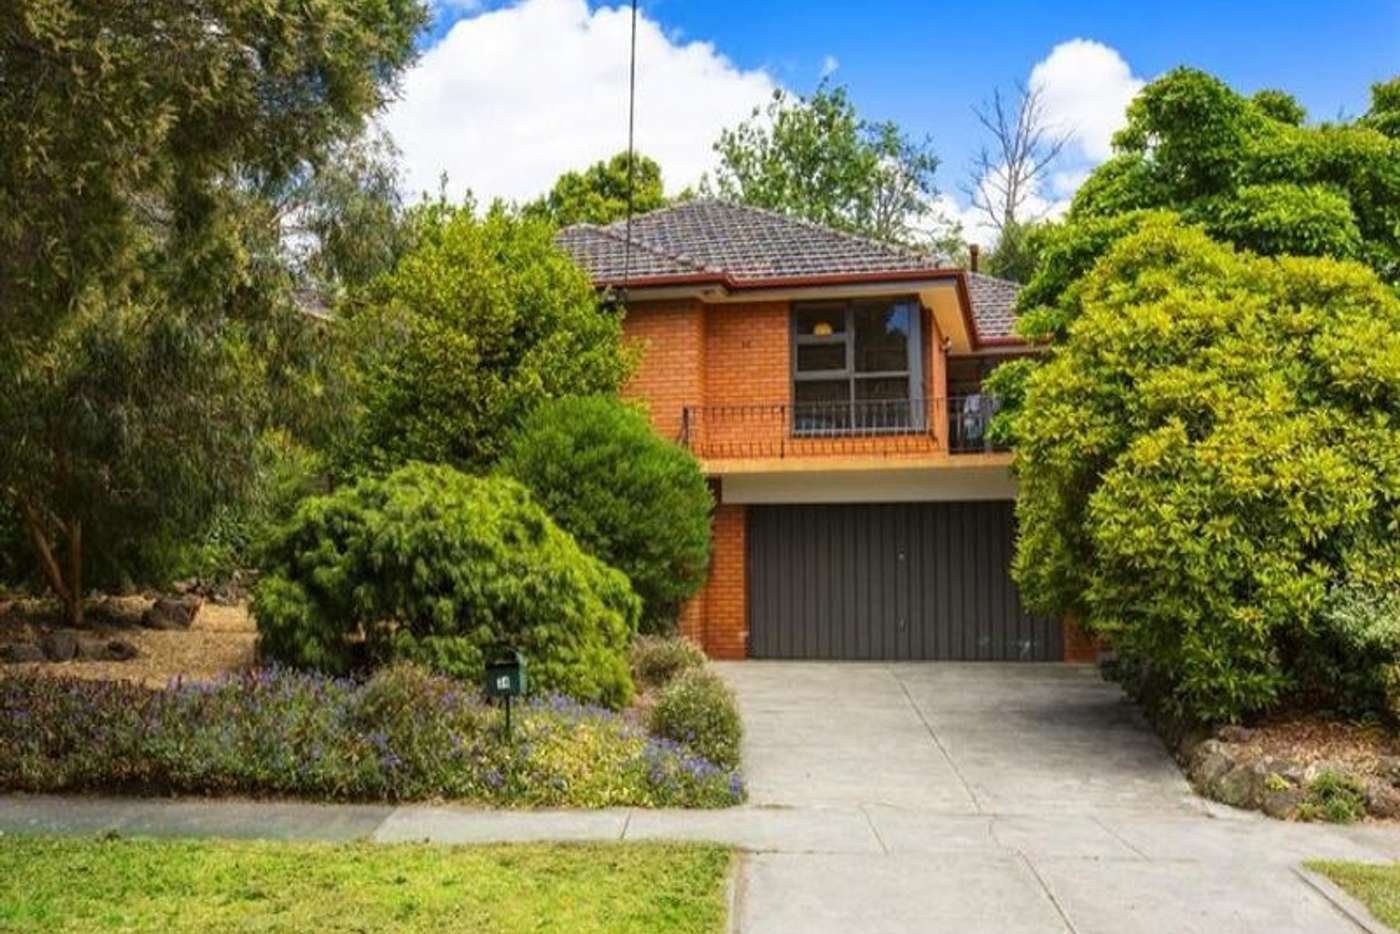 Main view of Homely house listing, 34 Minerva Avenue, Balwyn North VIC 3104